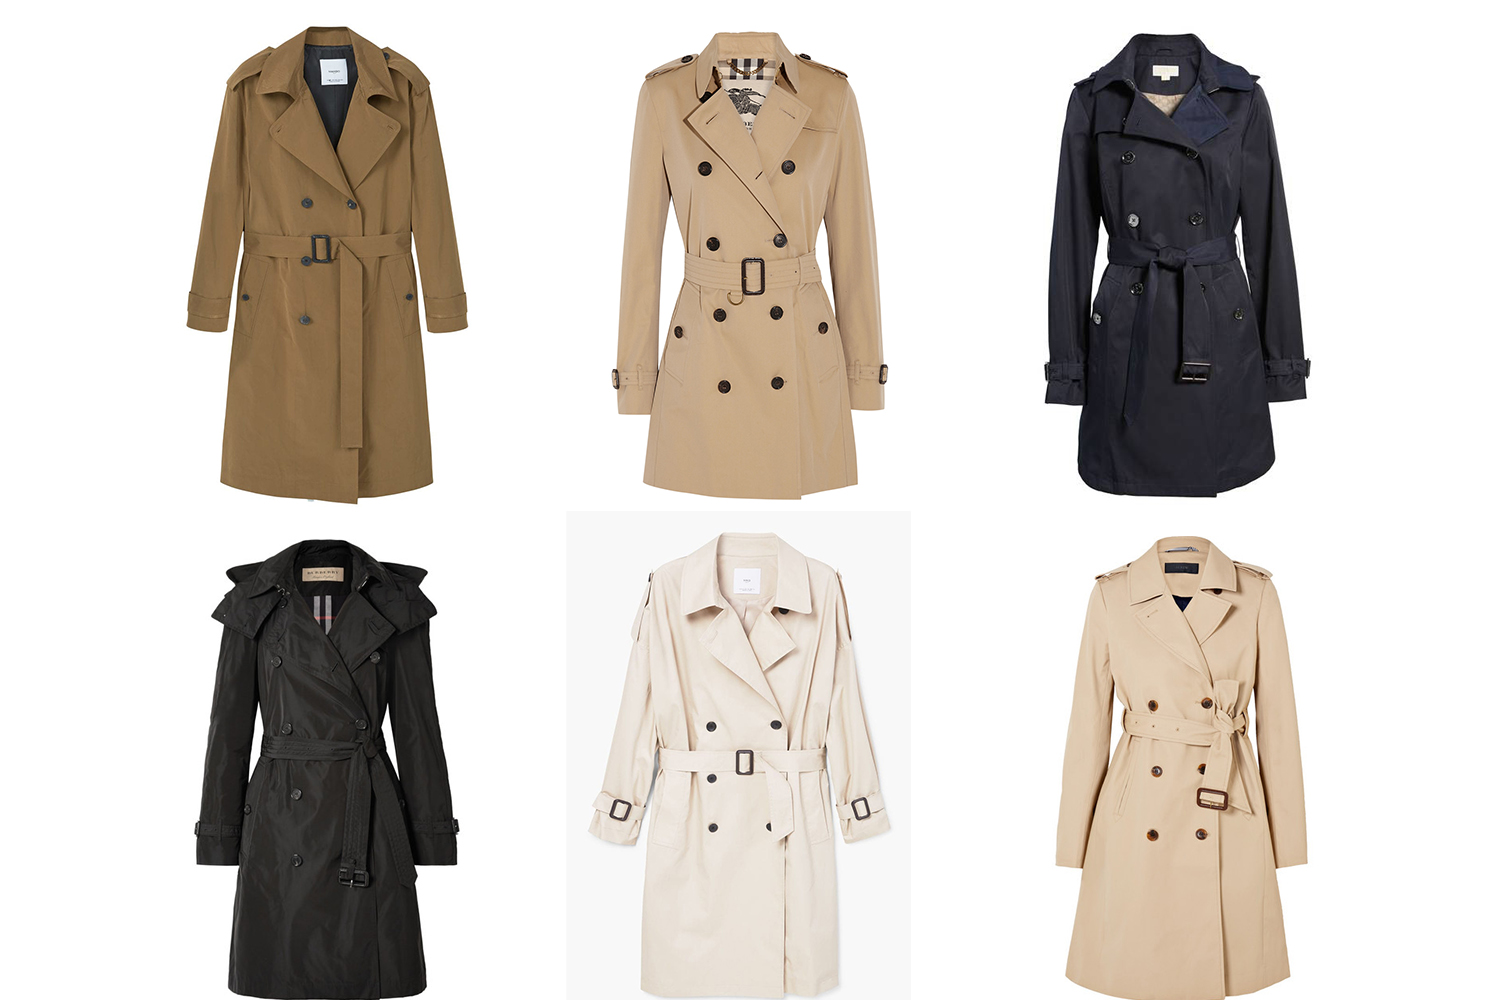 The Trench Coat Style For You